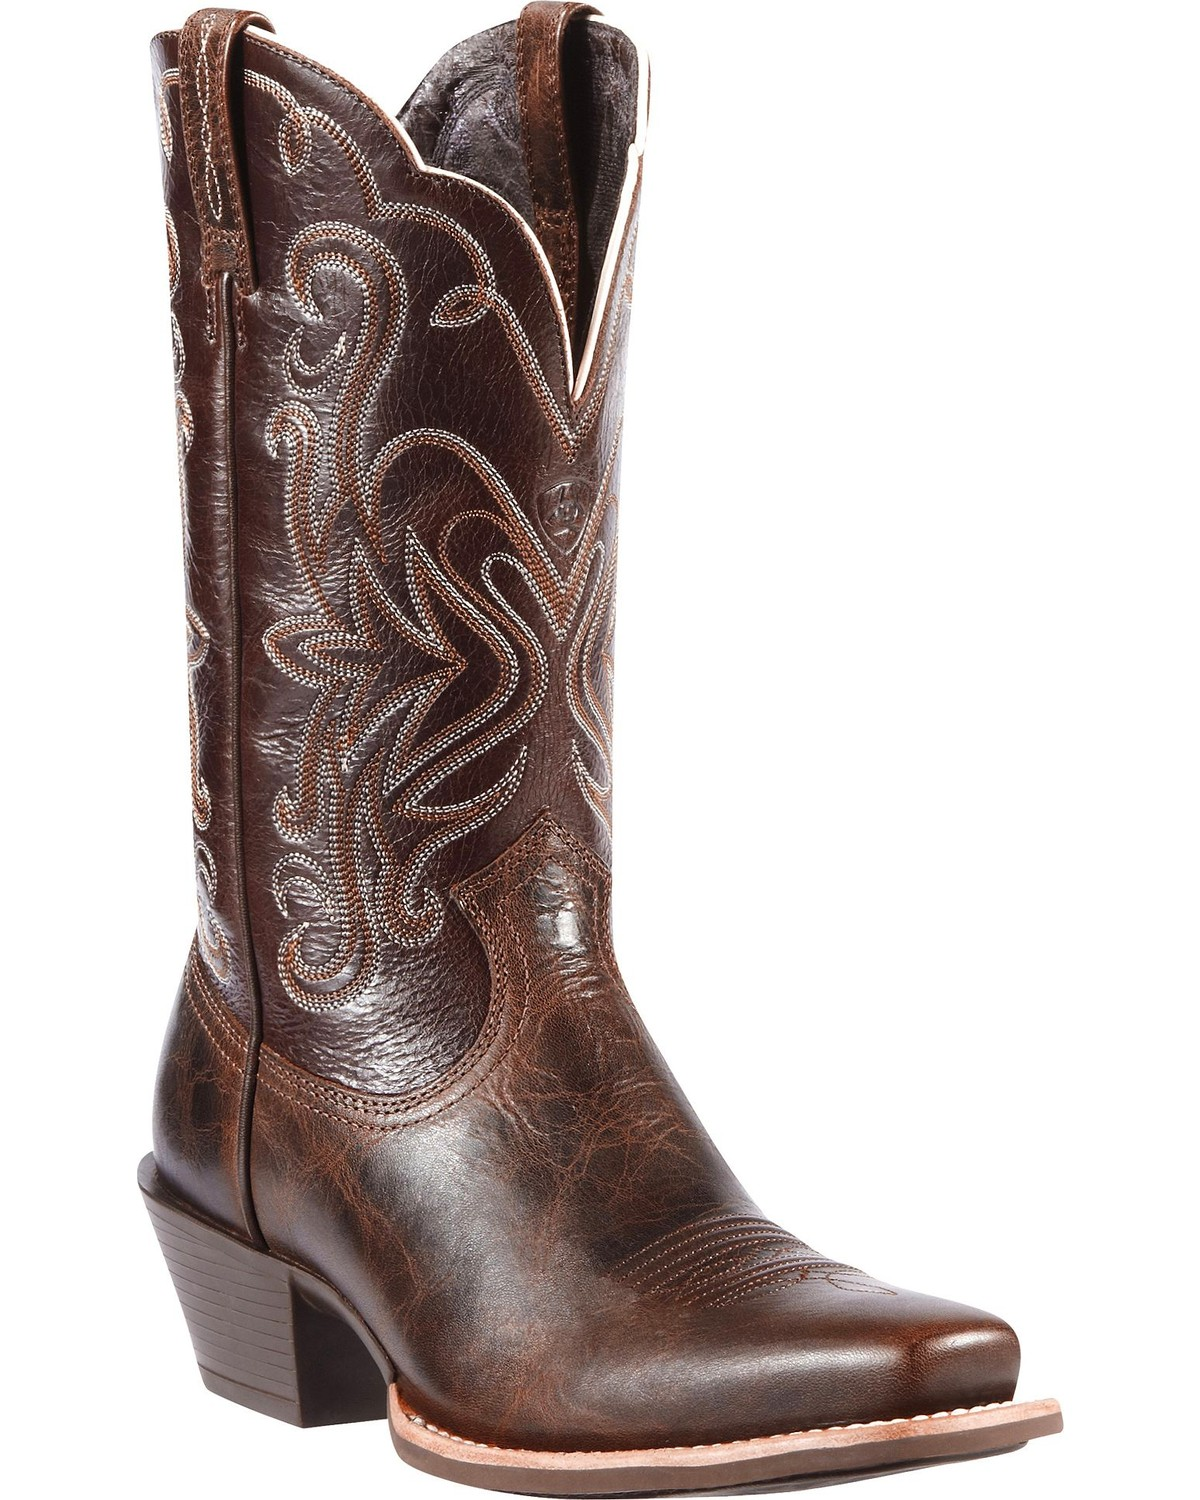 Ariat Legend Chocolate Chip Cowgirl Boots Snip Toe